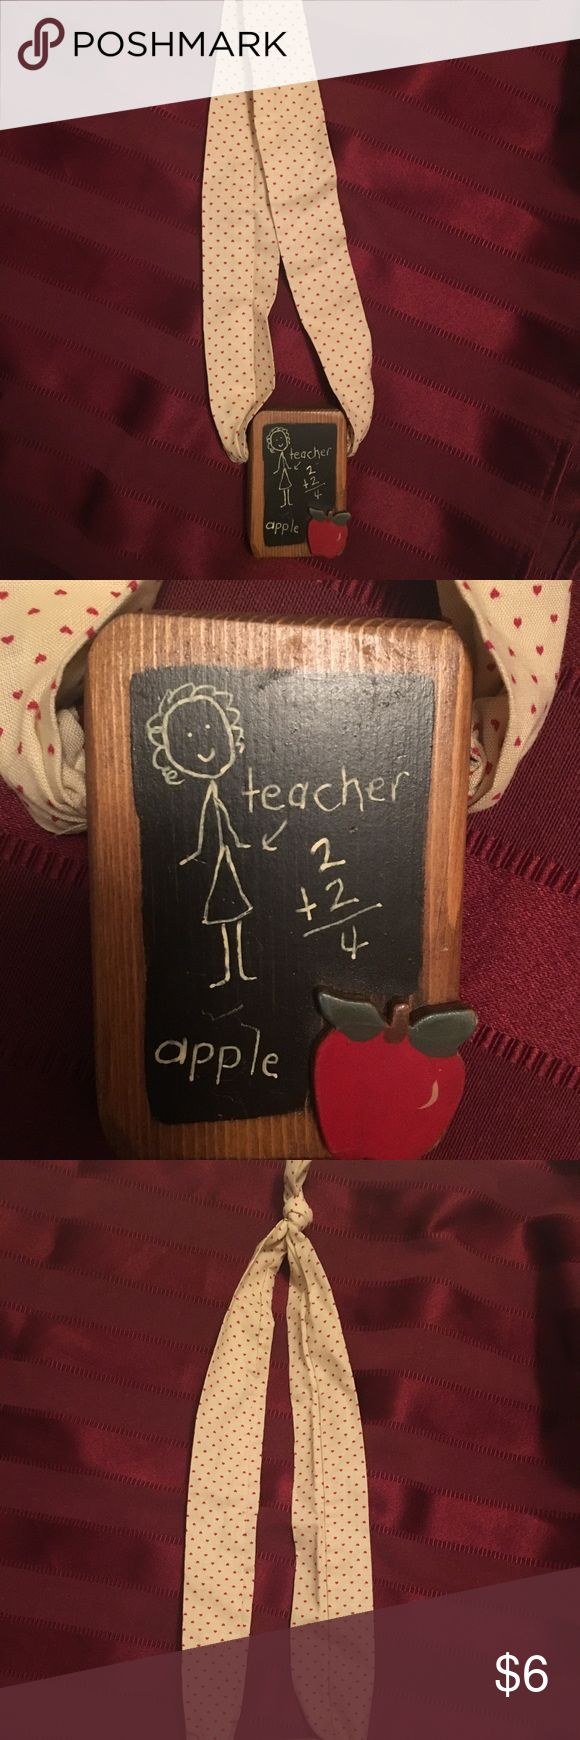 Teacher wooden necklace Teacher wooden chalkboard necklace with beige cloth. Would make a great teacher Christmas gift! Jewelry Necklaces